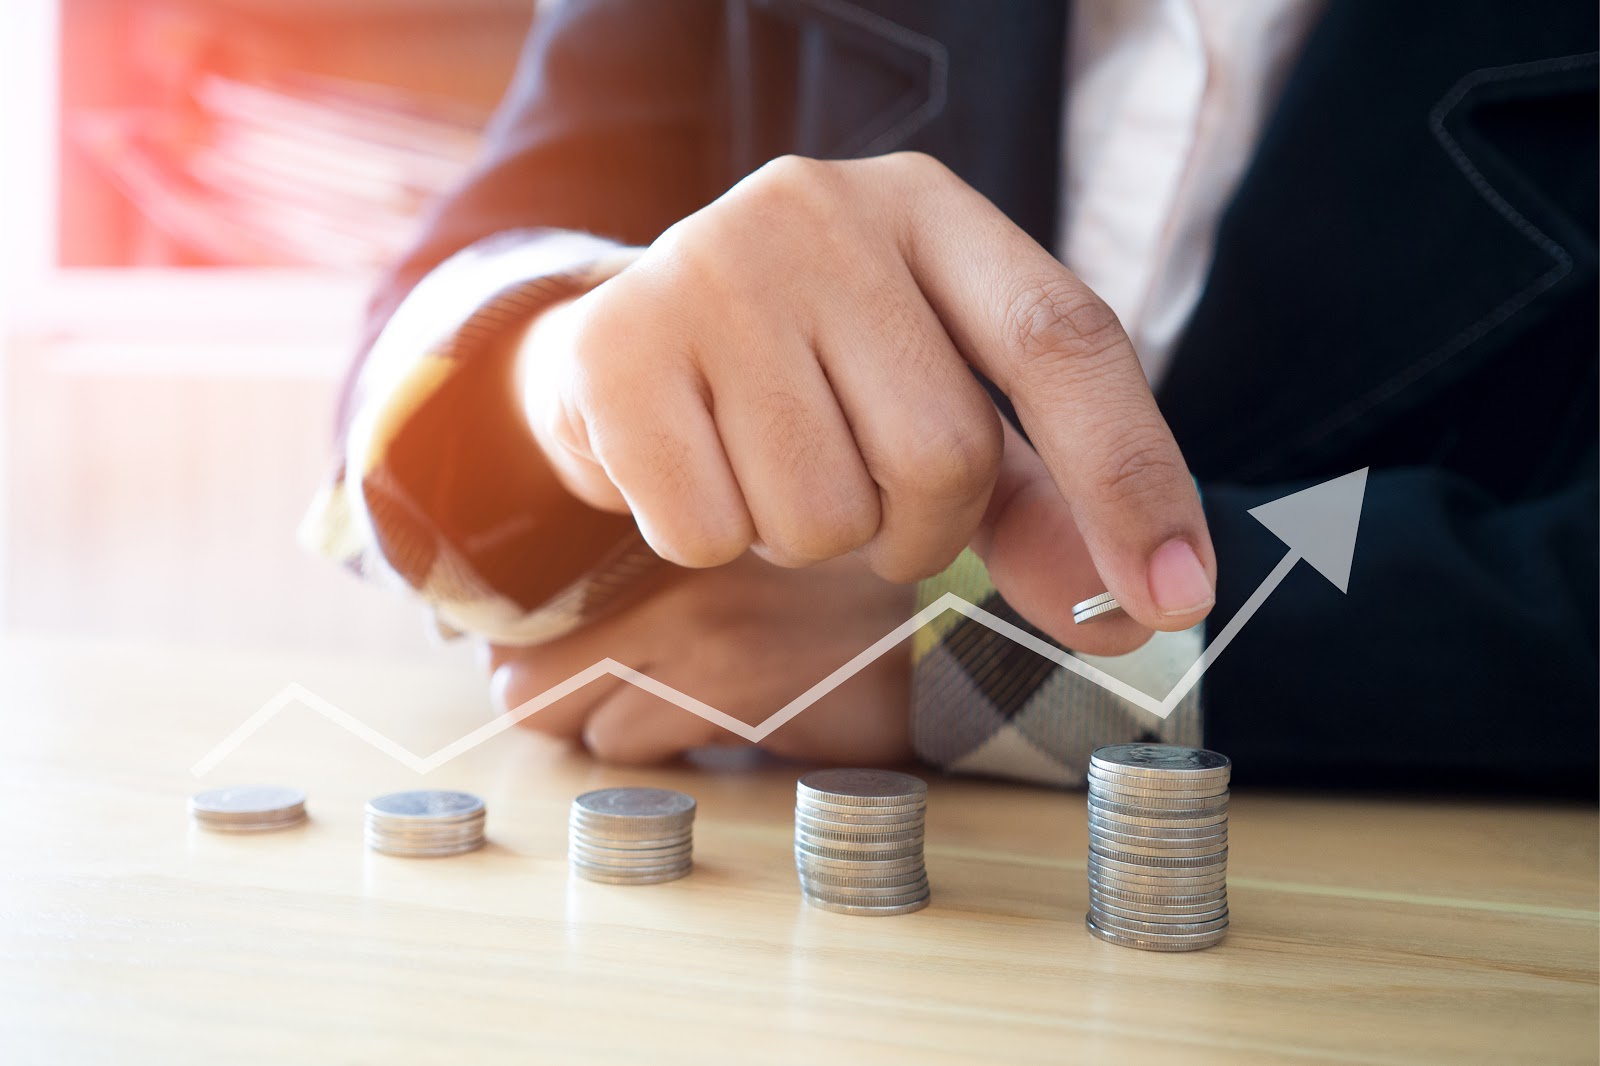 buying a call option: man stacking coins